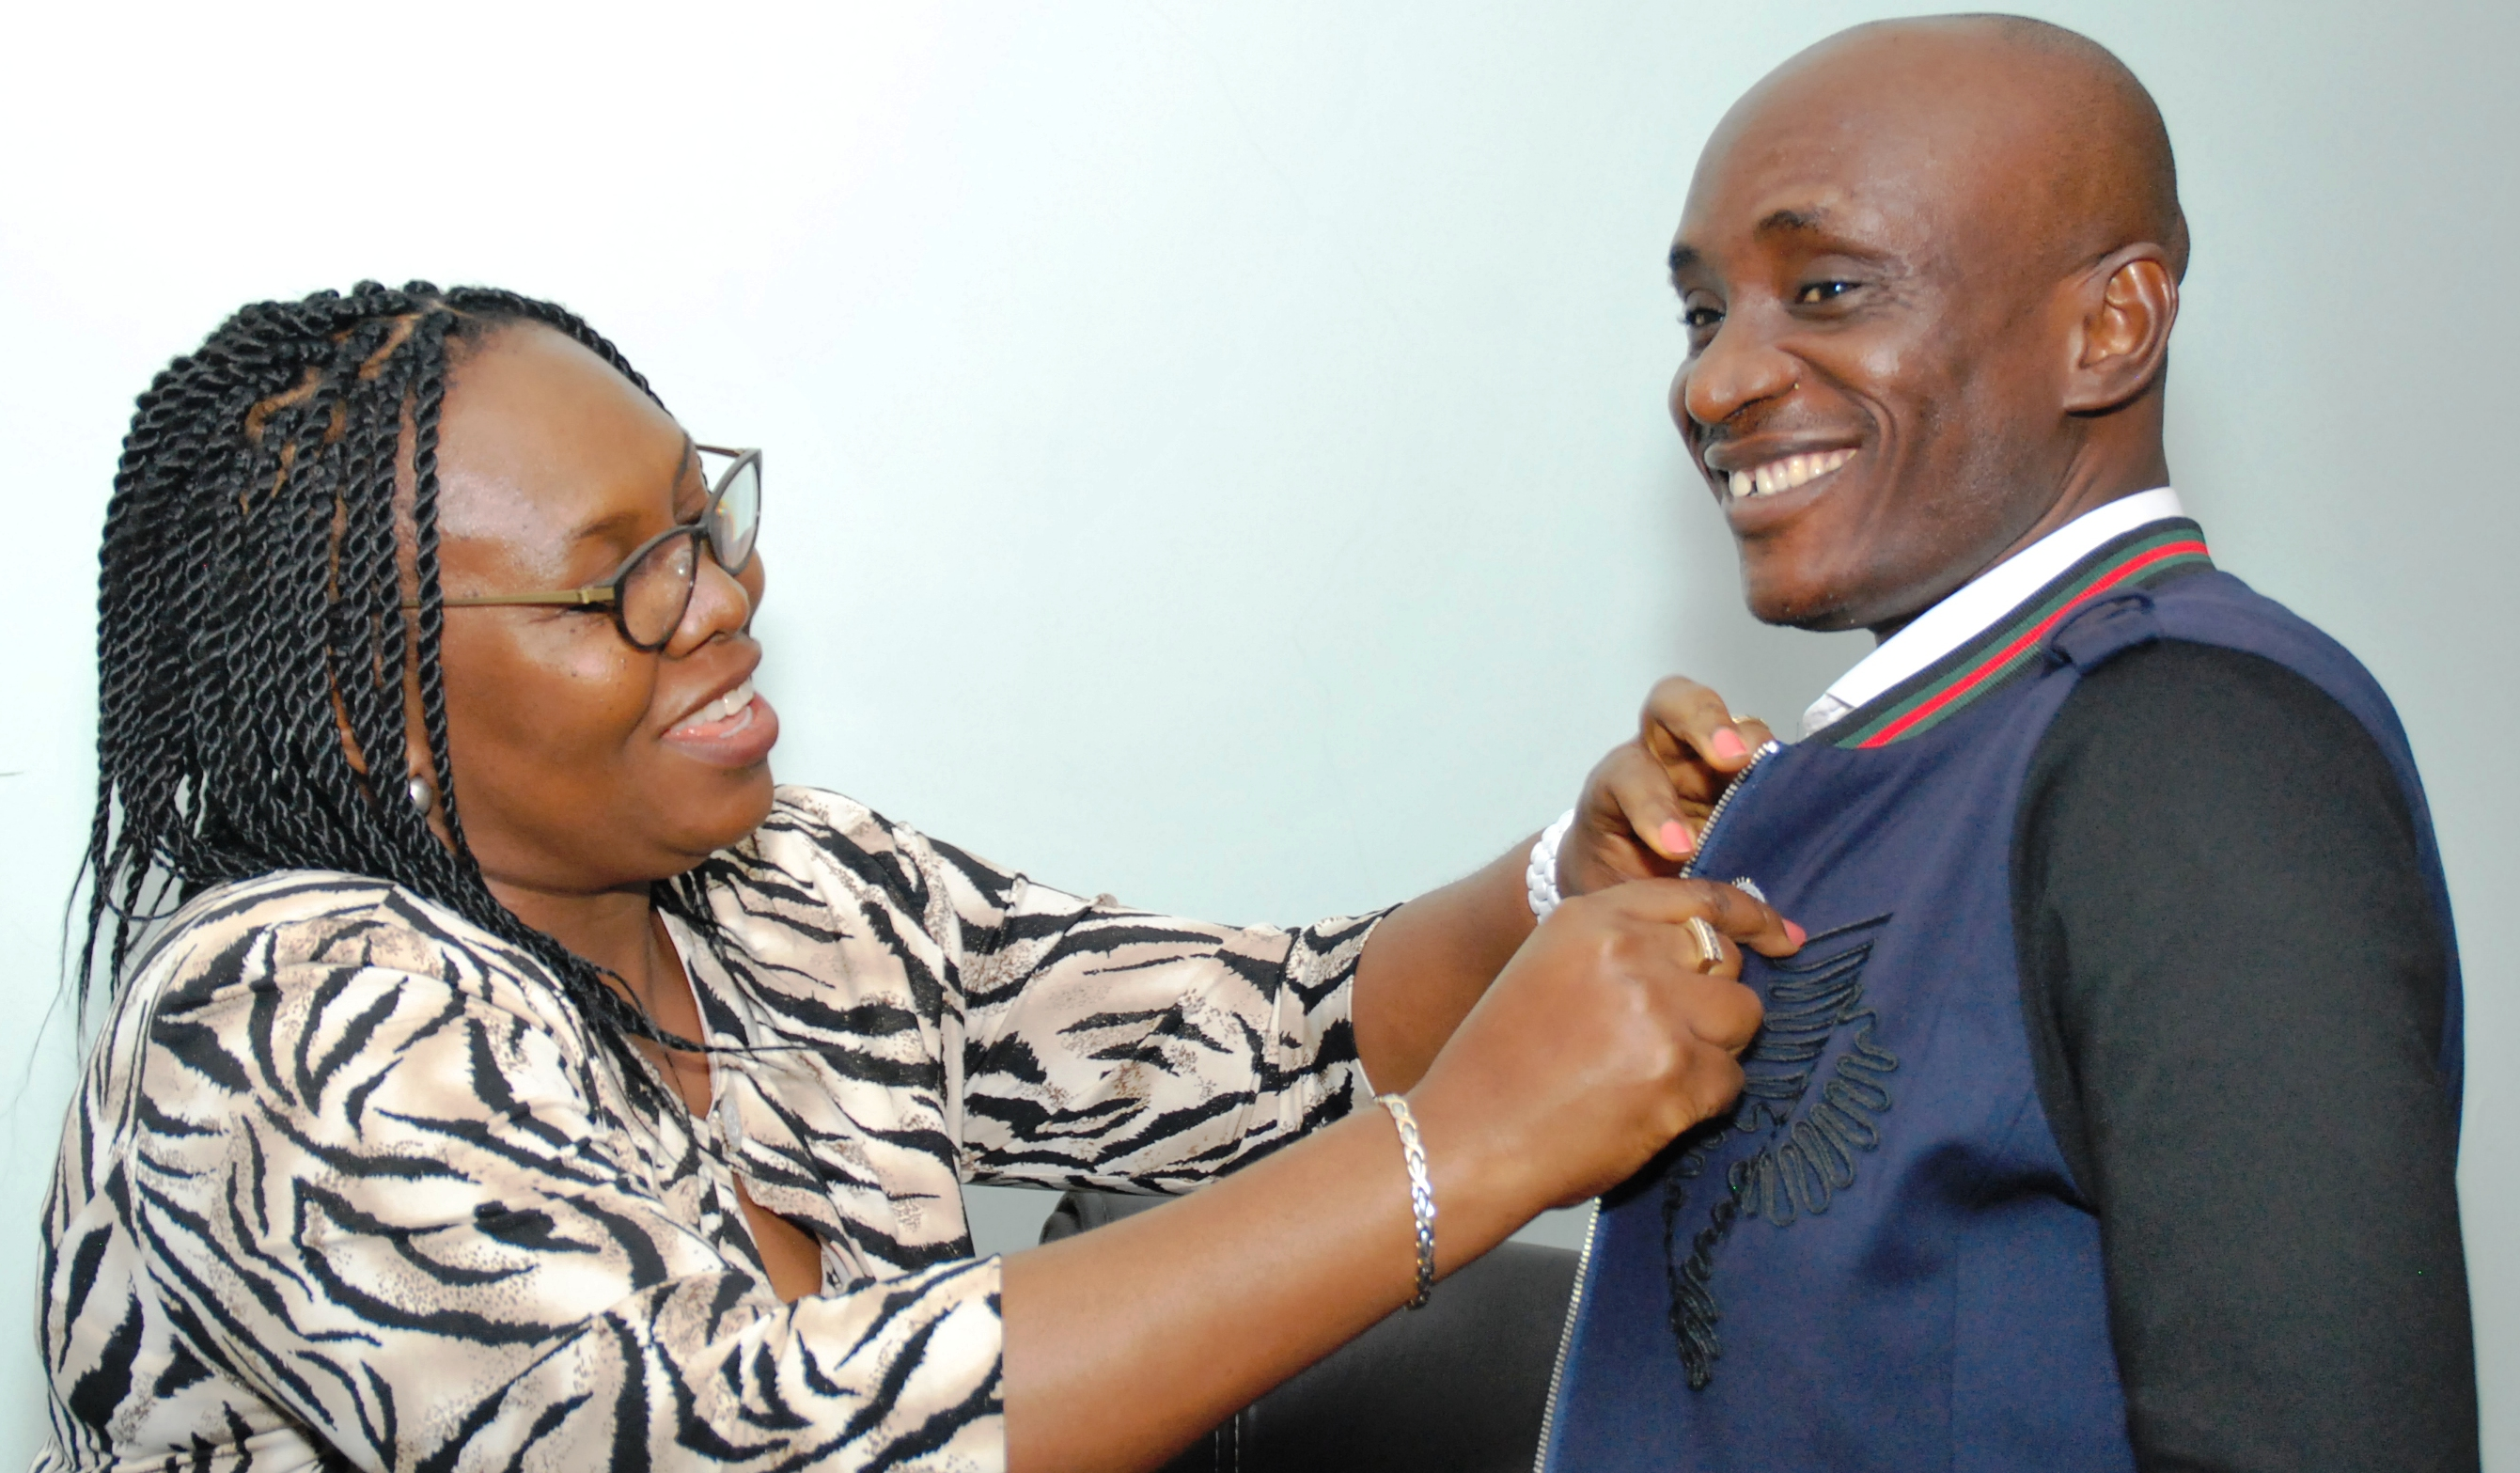 The investiture and decoration of the Speaker, Hon. John Gaul, as honorary member of the Calabar Chamber of Commerce, Industry, Mines and Agriculture by the President, Mrs. Thelma Kayode Bello.